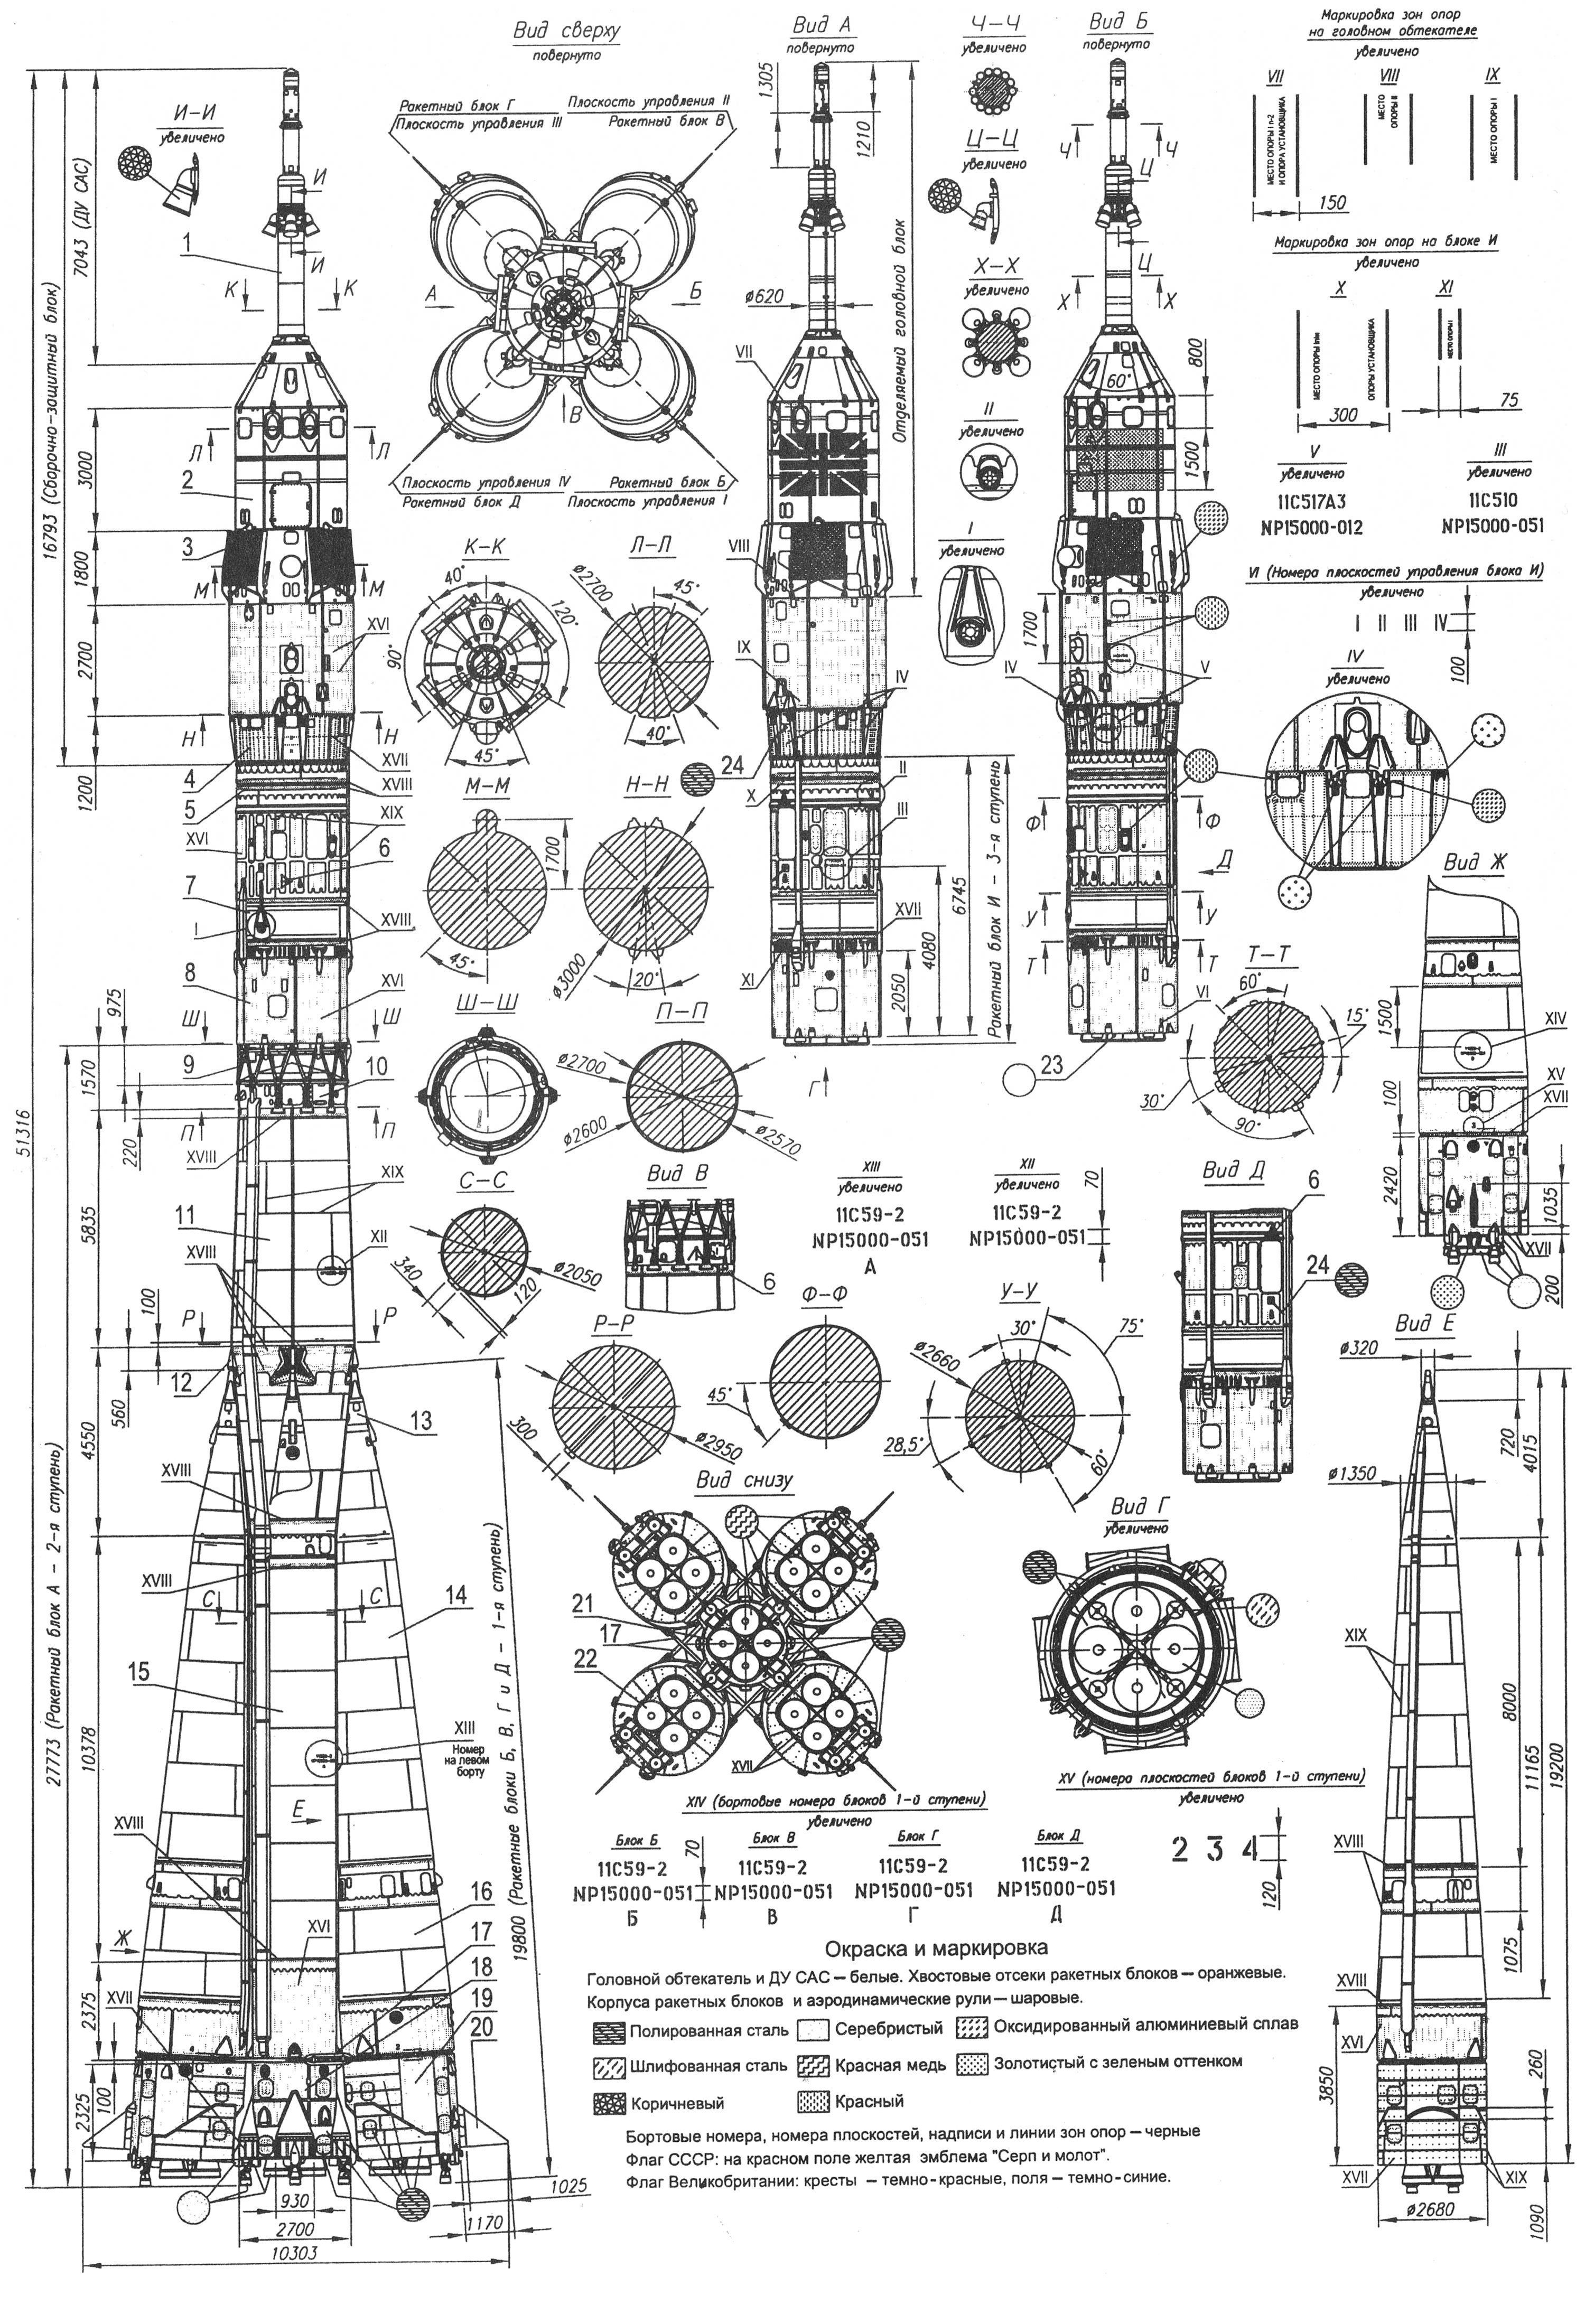 Pin By Ink And Awl On Technical Drawings